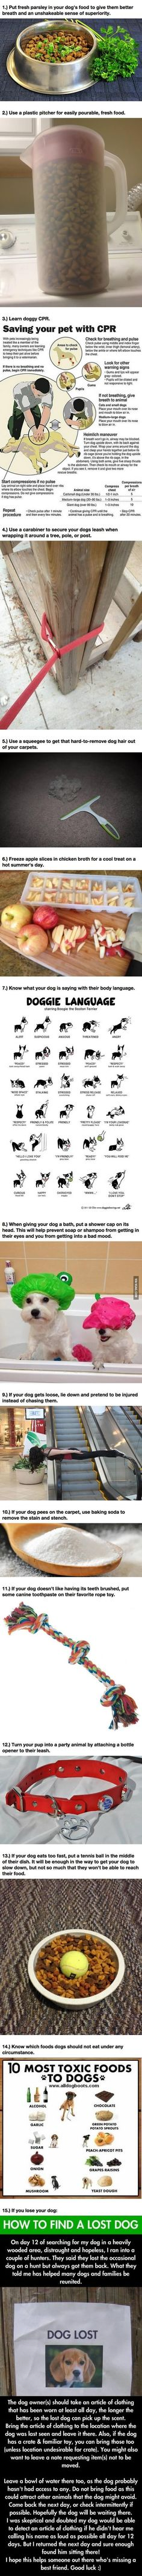 Great tips for dog owners! These ideas let your dog have a better experience and make your life a little easier. Good to know and easy to start doing! #CatClothes